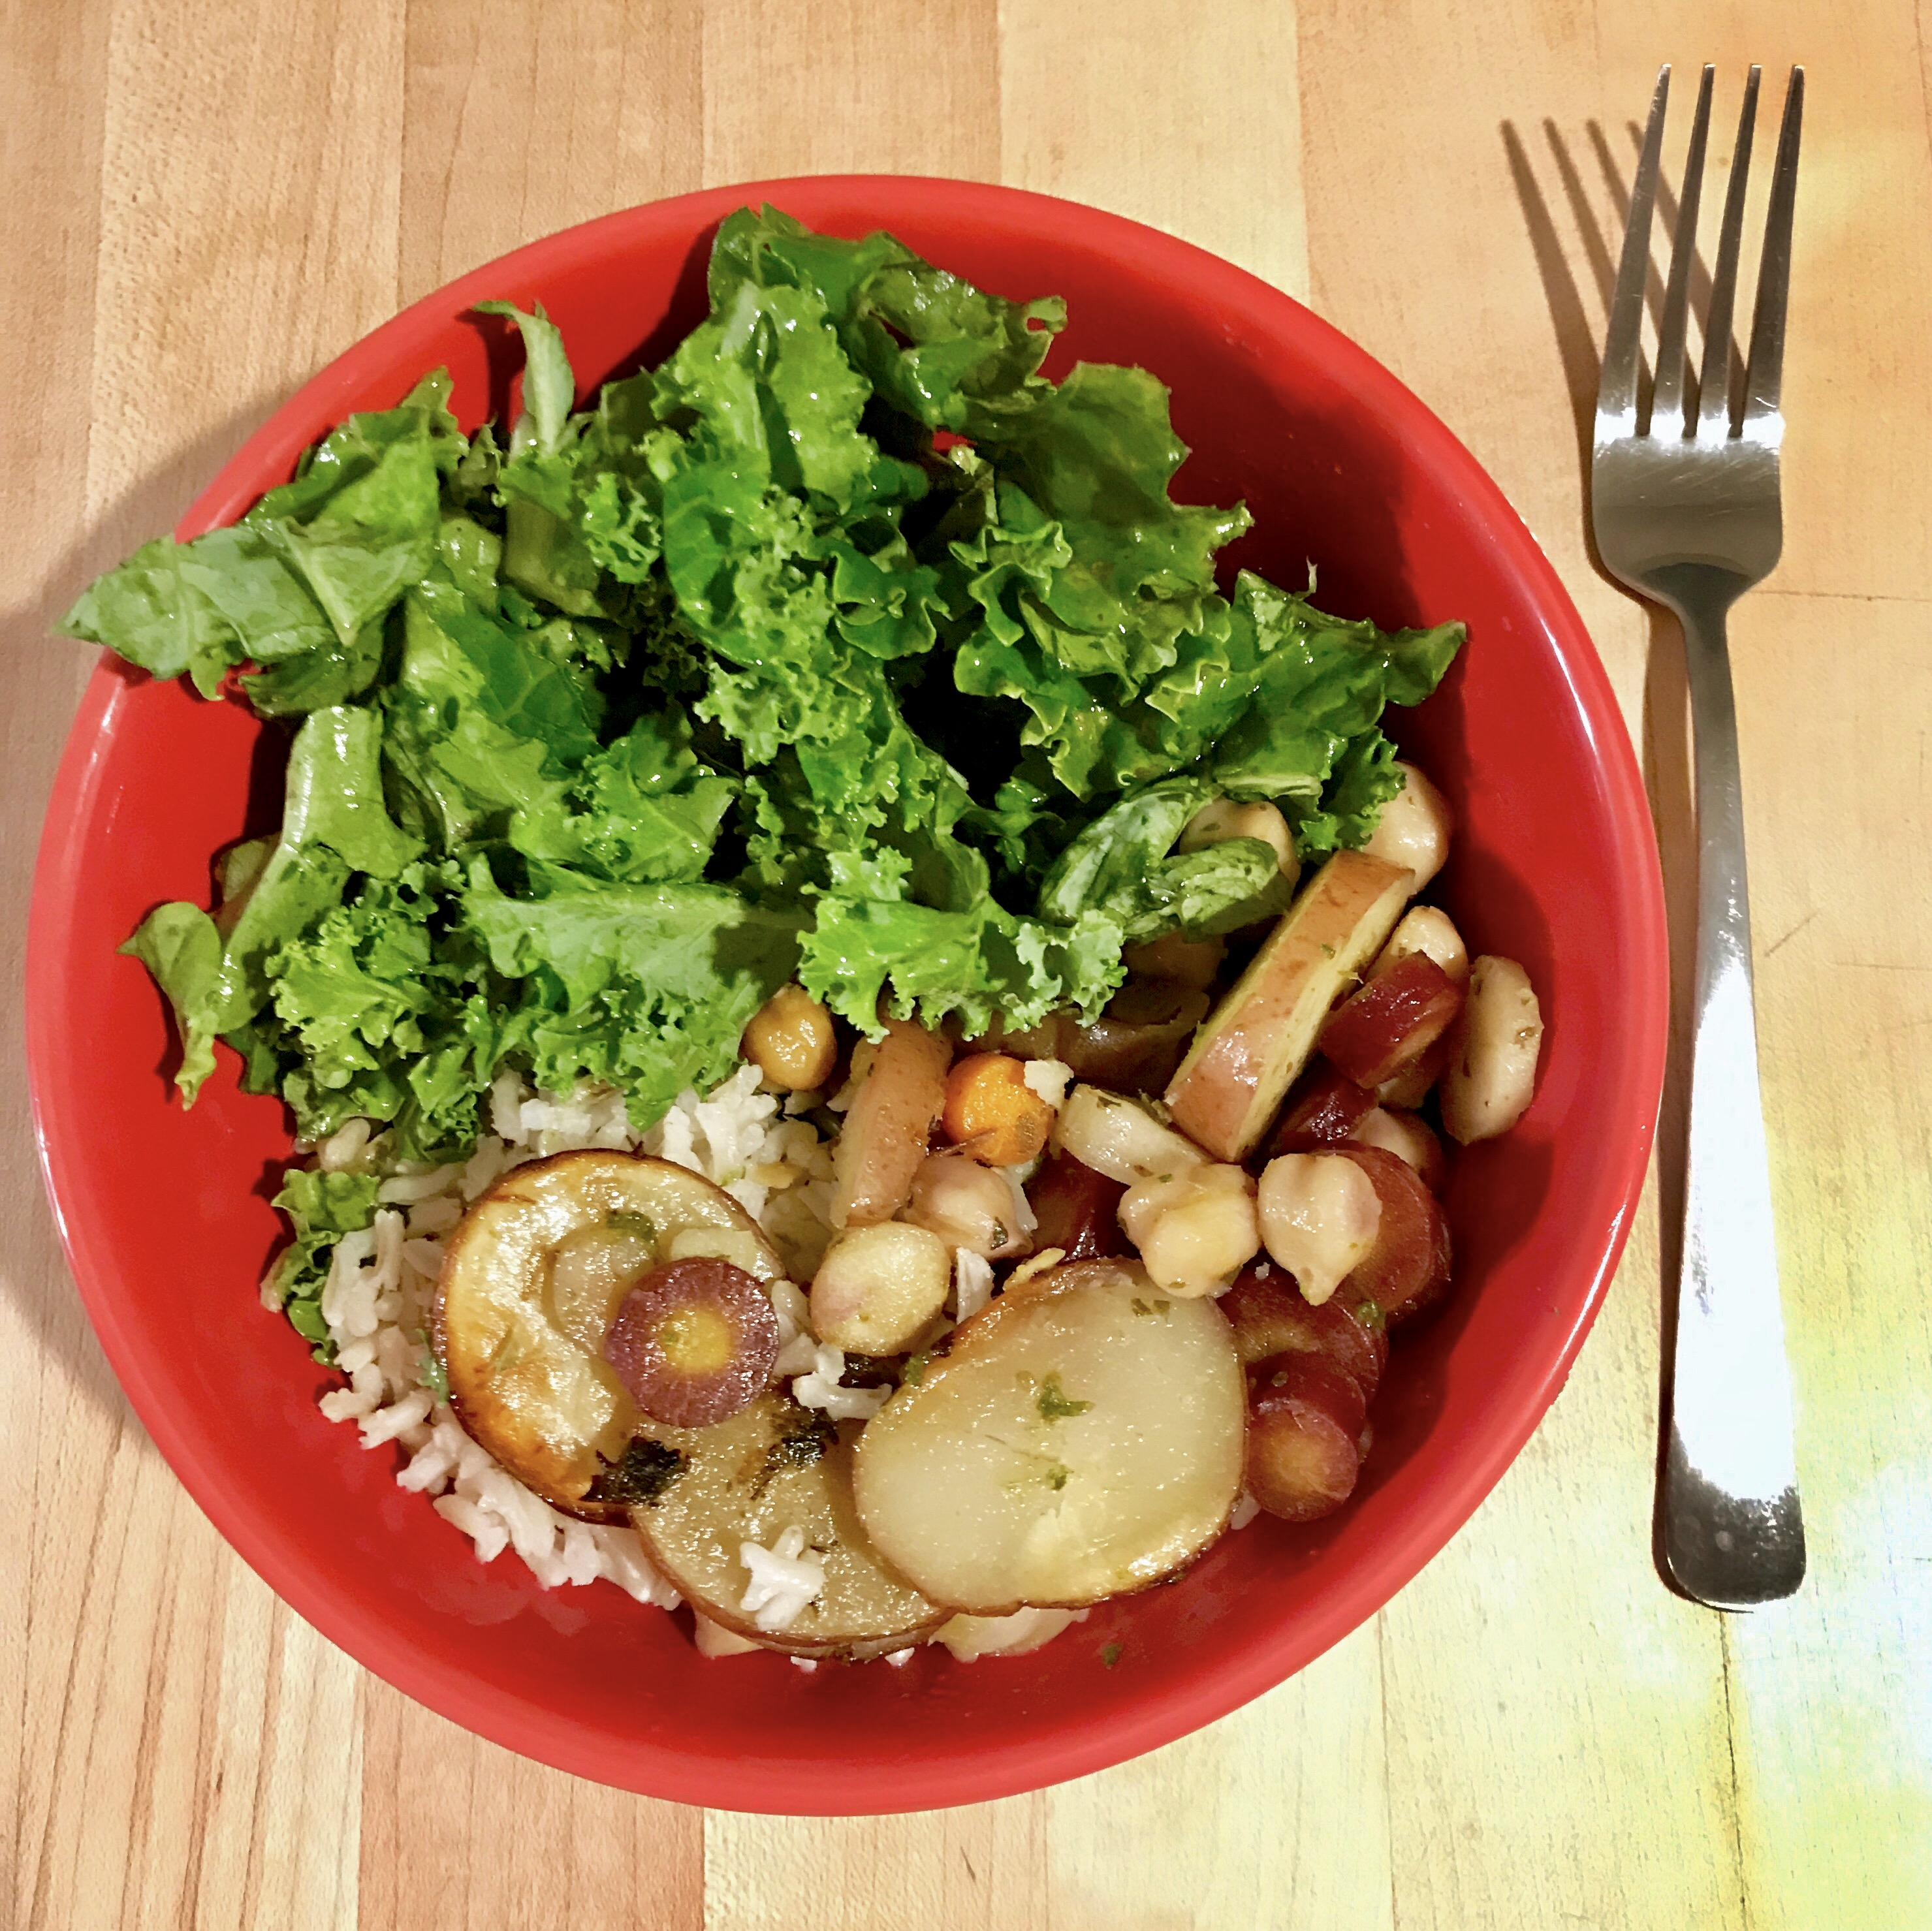 Healthy Lunch  Kale Salad with Potato, Carrot, and Rice